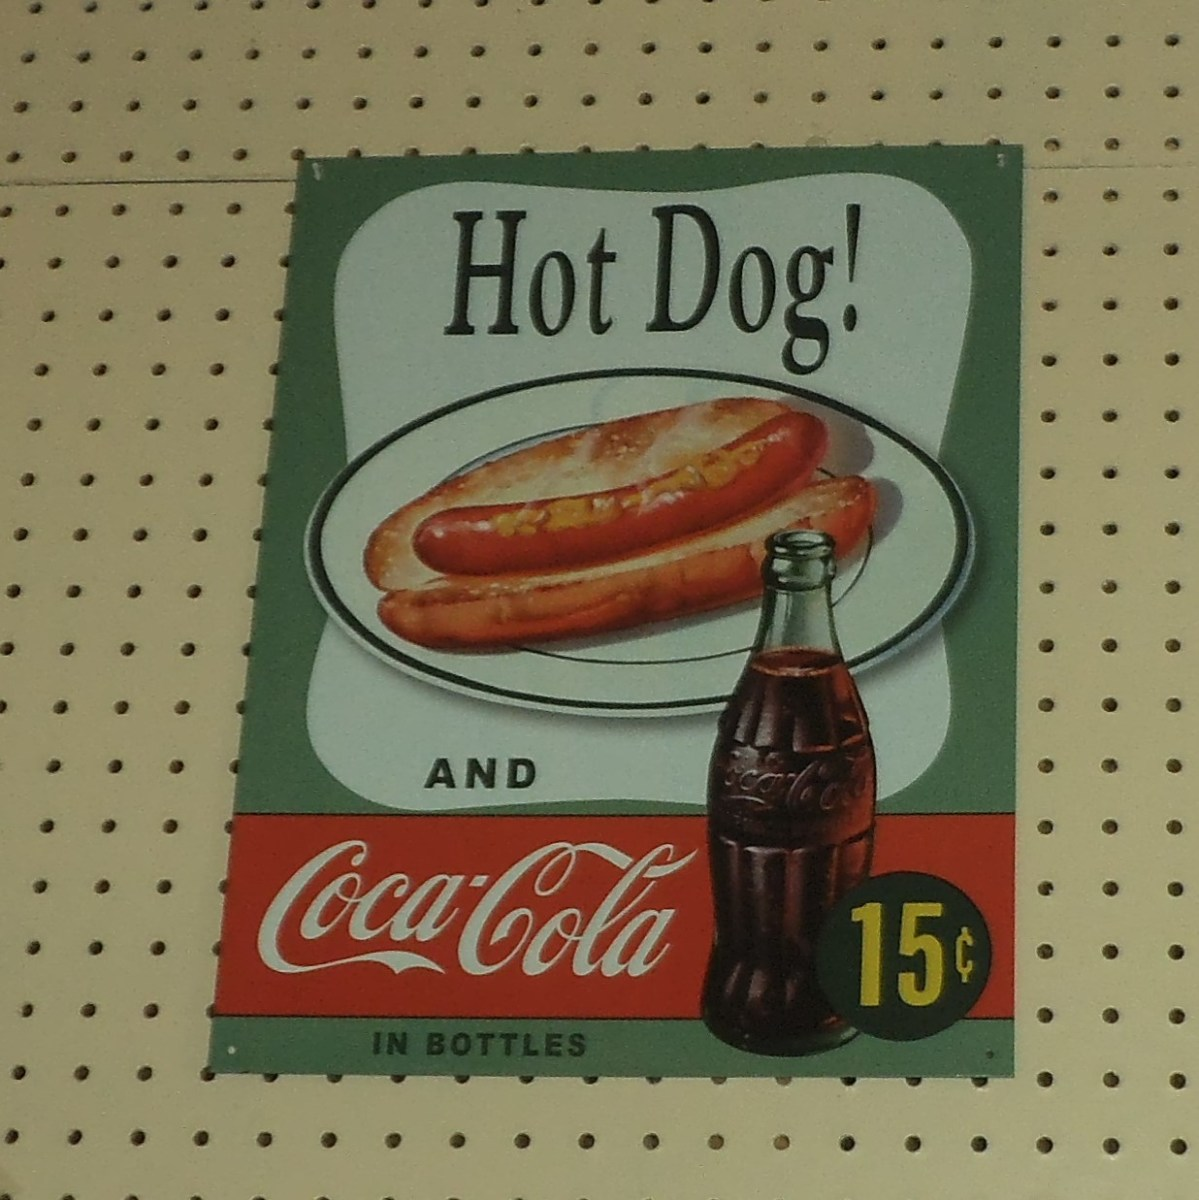 It's hard to imagine a Coke for just 15 cents (or maybe it's the hot dog that is 15 cents). Either way, quite a bargain by today's standards.